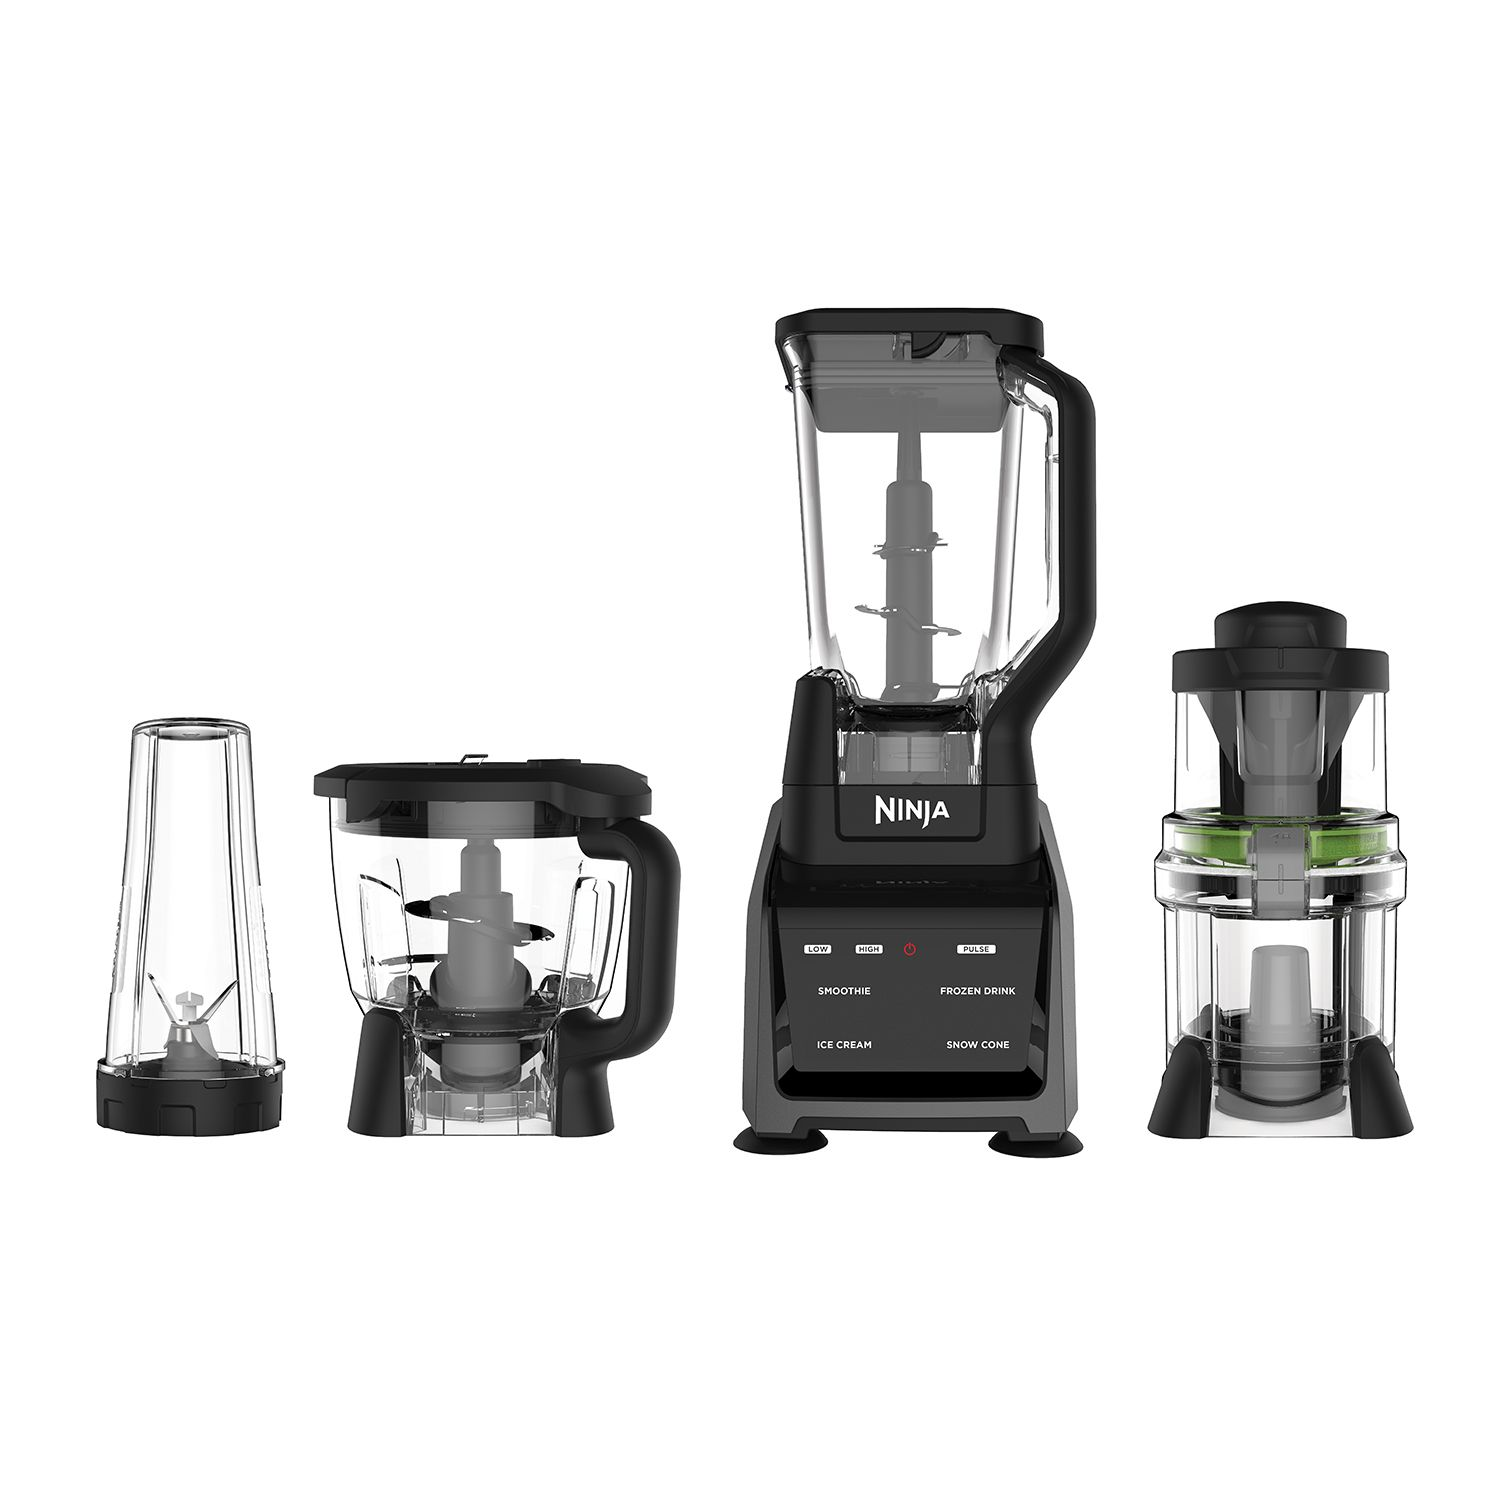 Ninja Blenders & Juicers Small Appliances, Kitchen & Dining | Kohl\'s